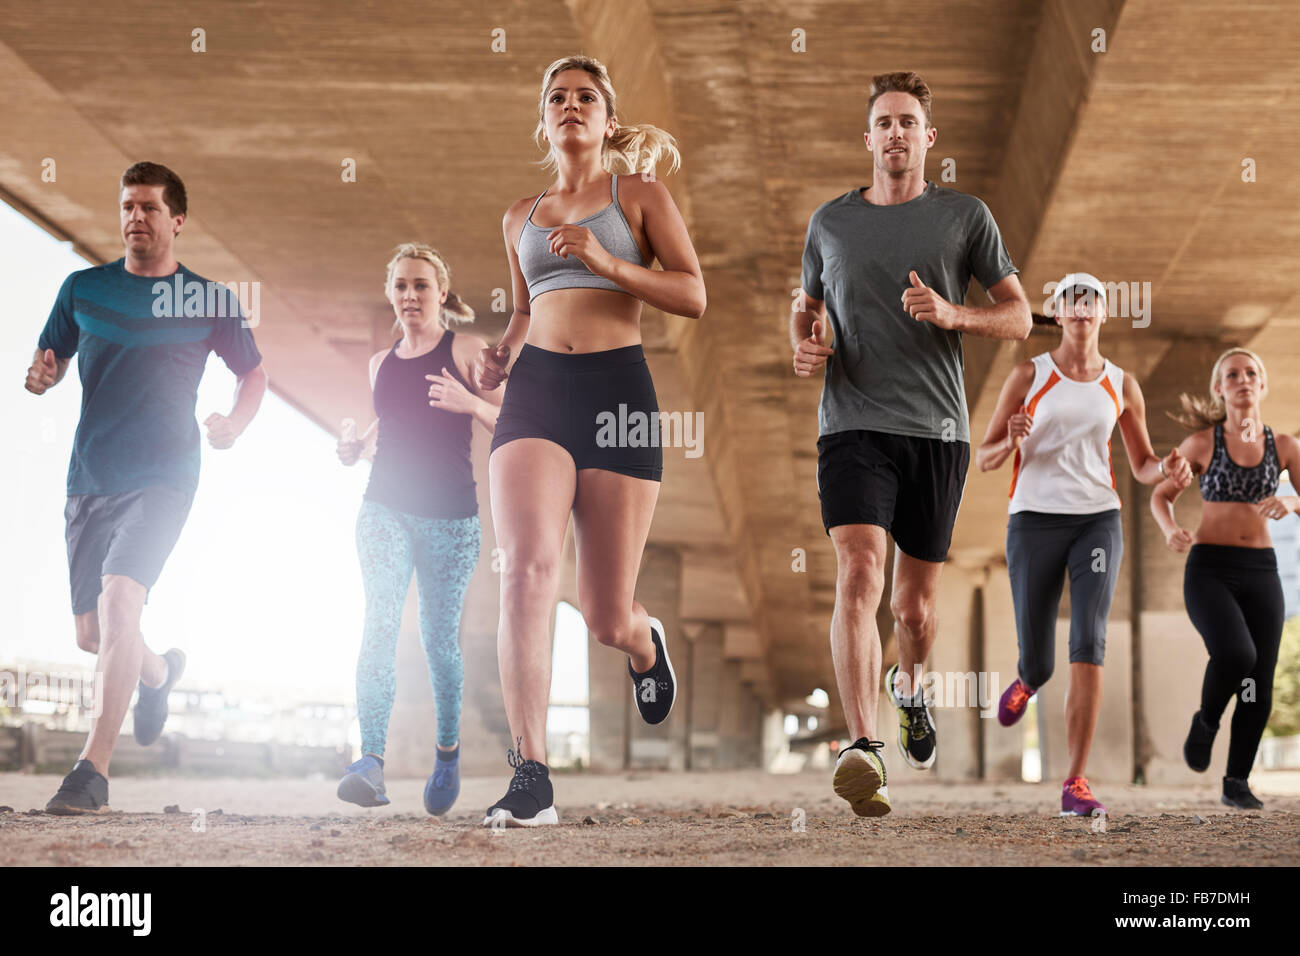 Determined  group of young people running together in city. Low angle shot of running club members training together - Stock Image